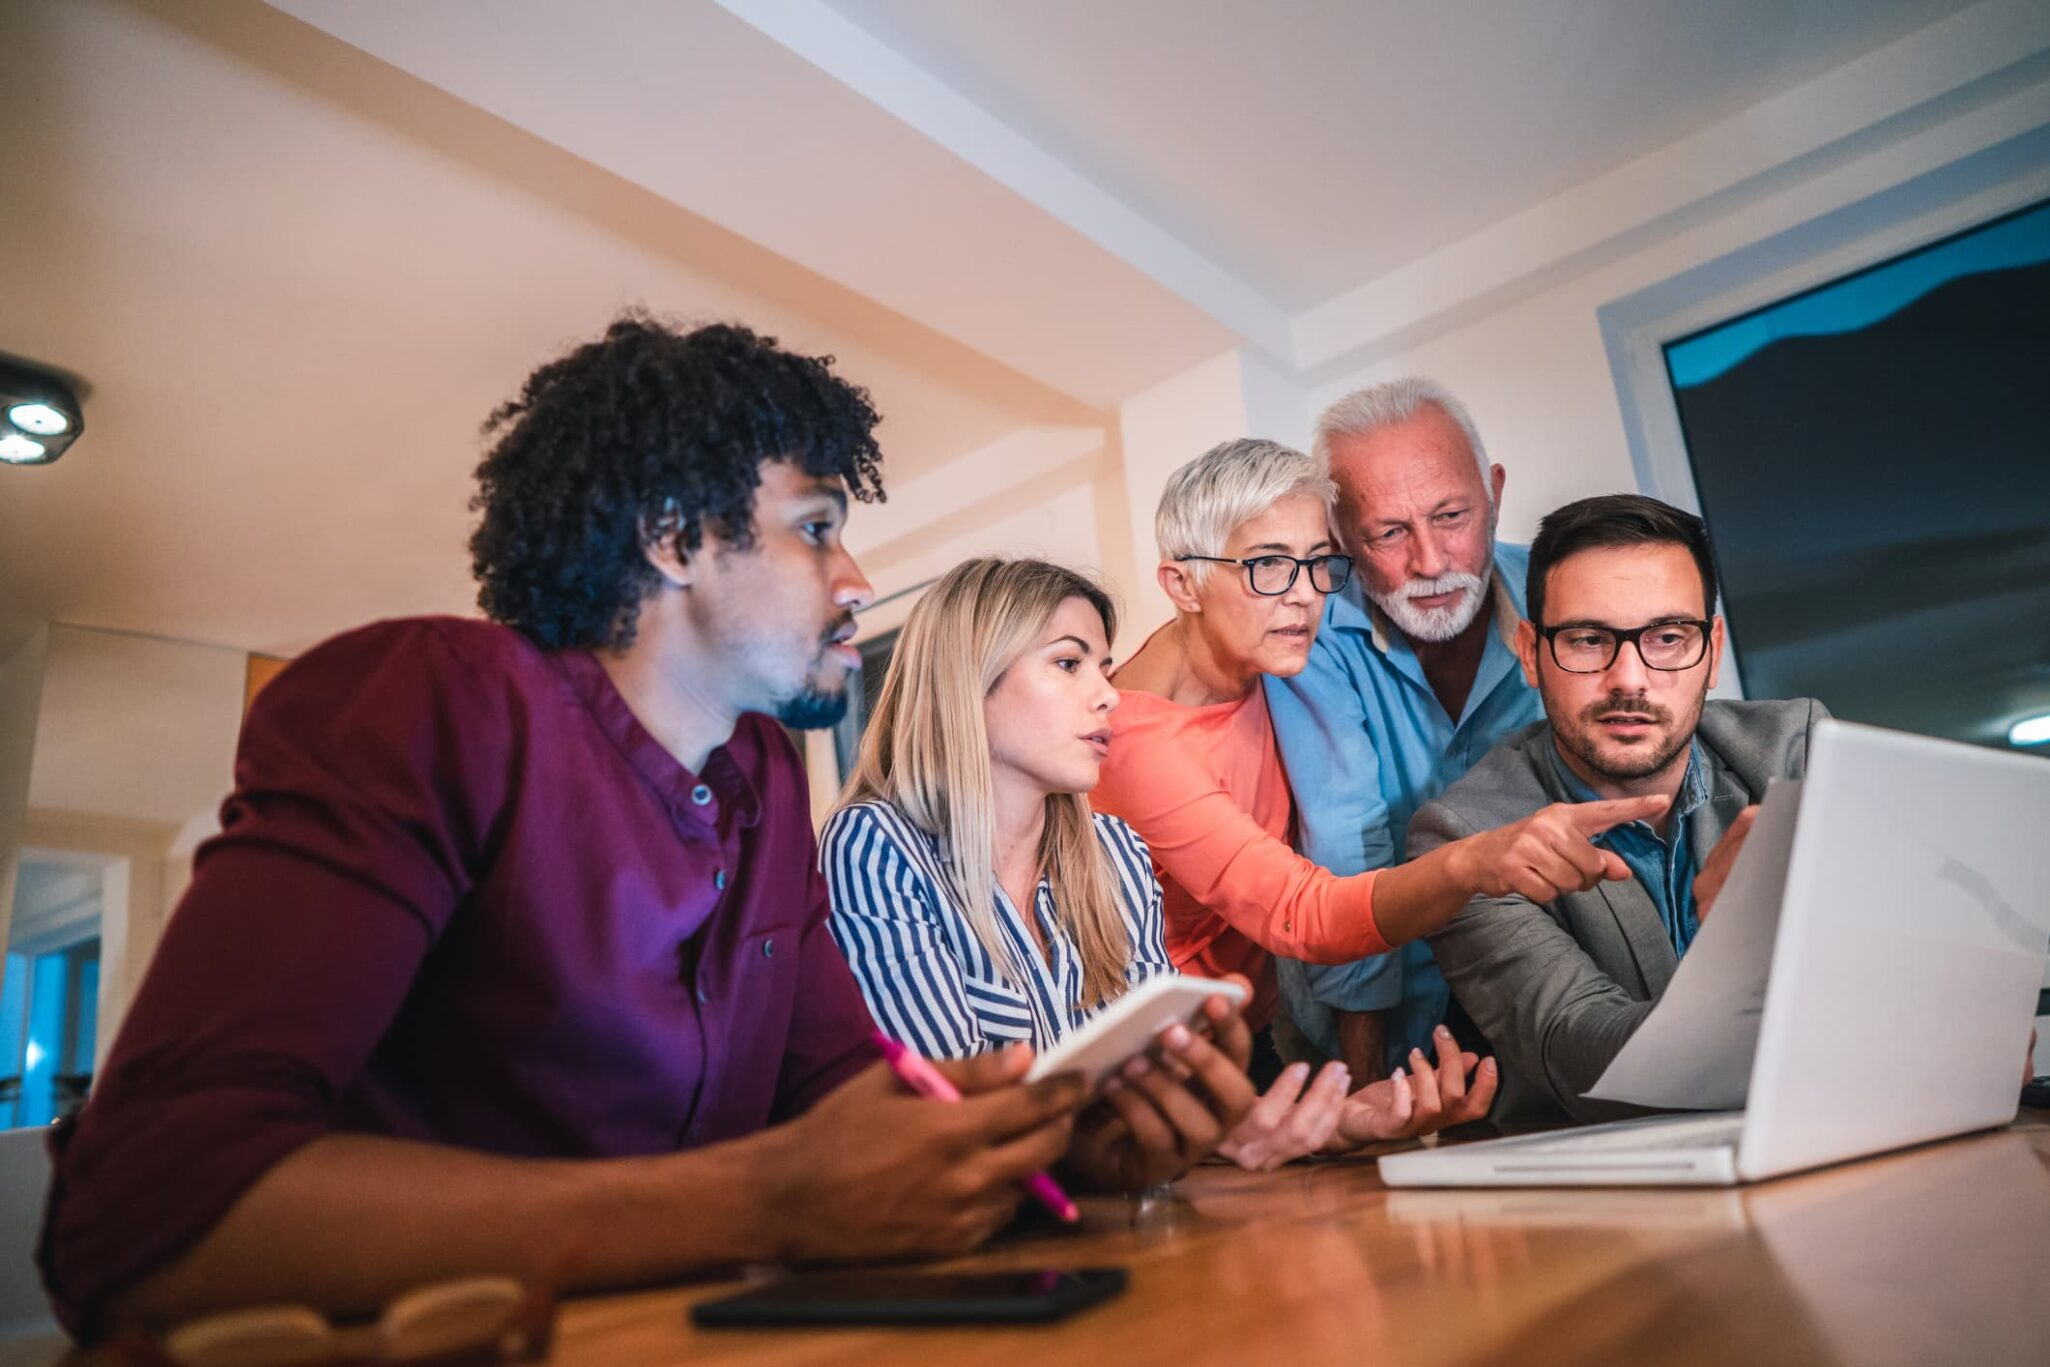 Family consults computer together at dining room table.